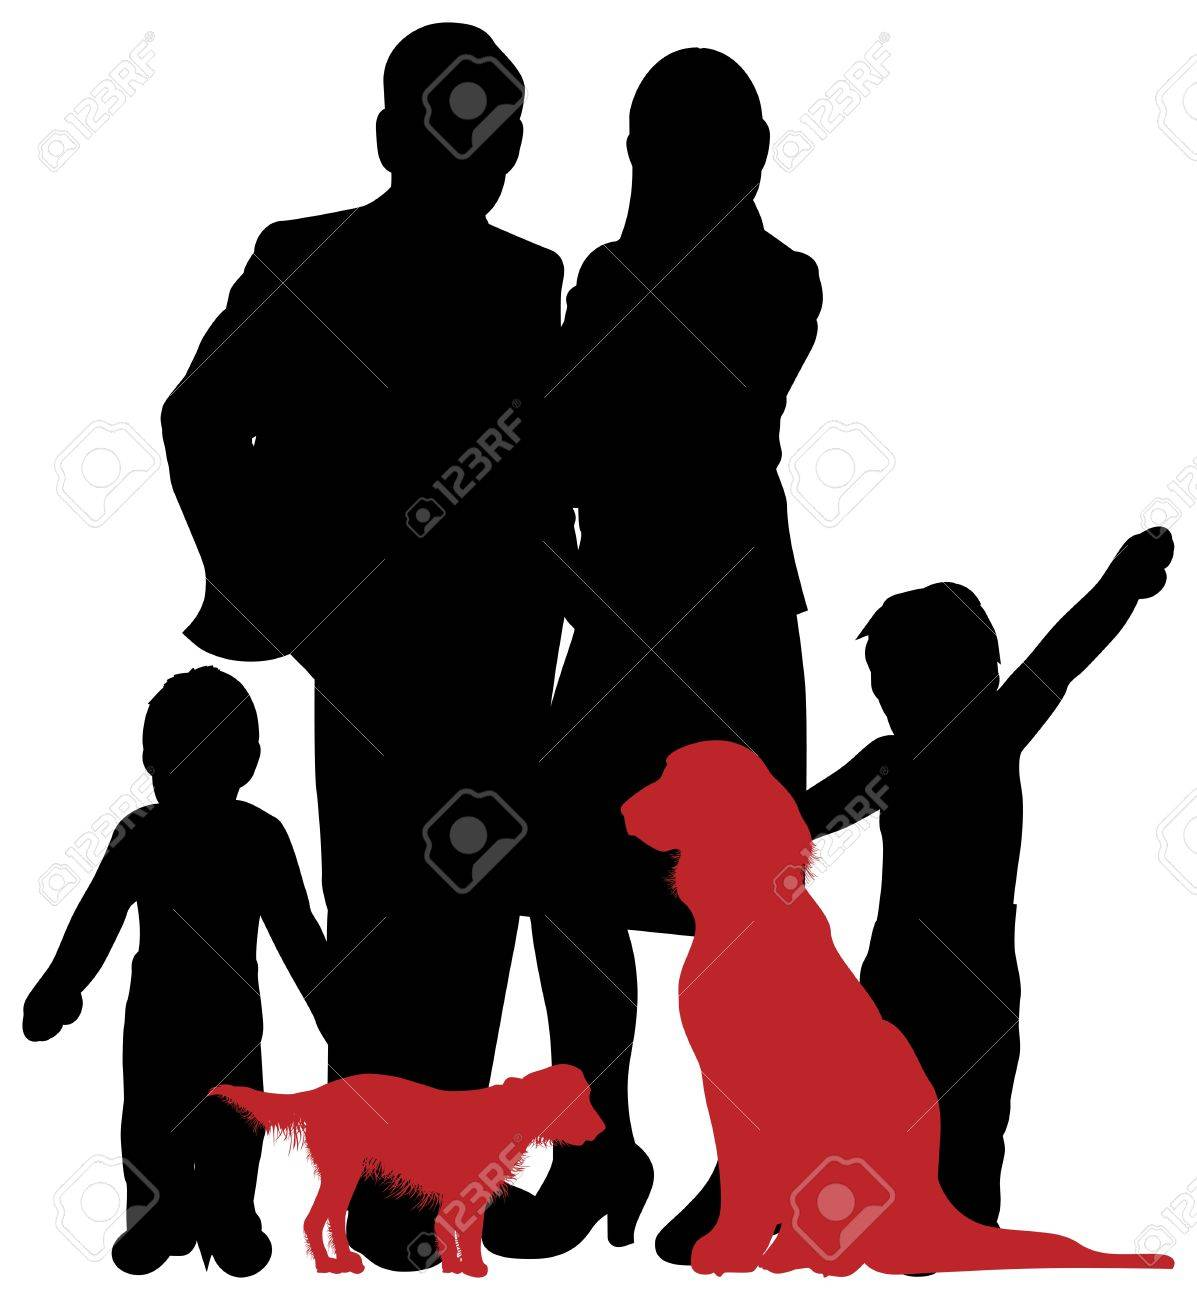 a family silhouette Stock Vector - 15502541